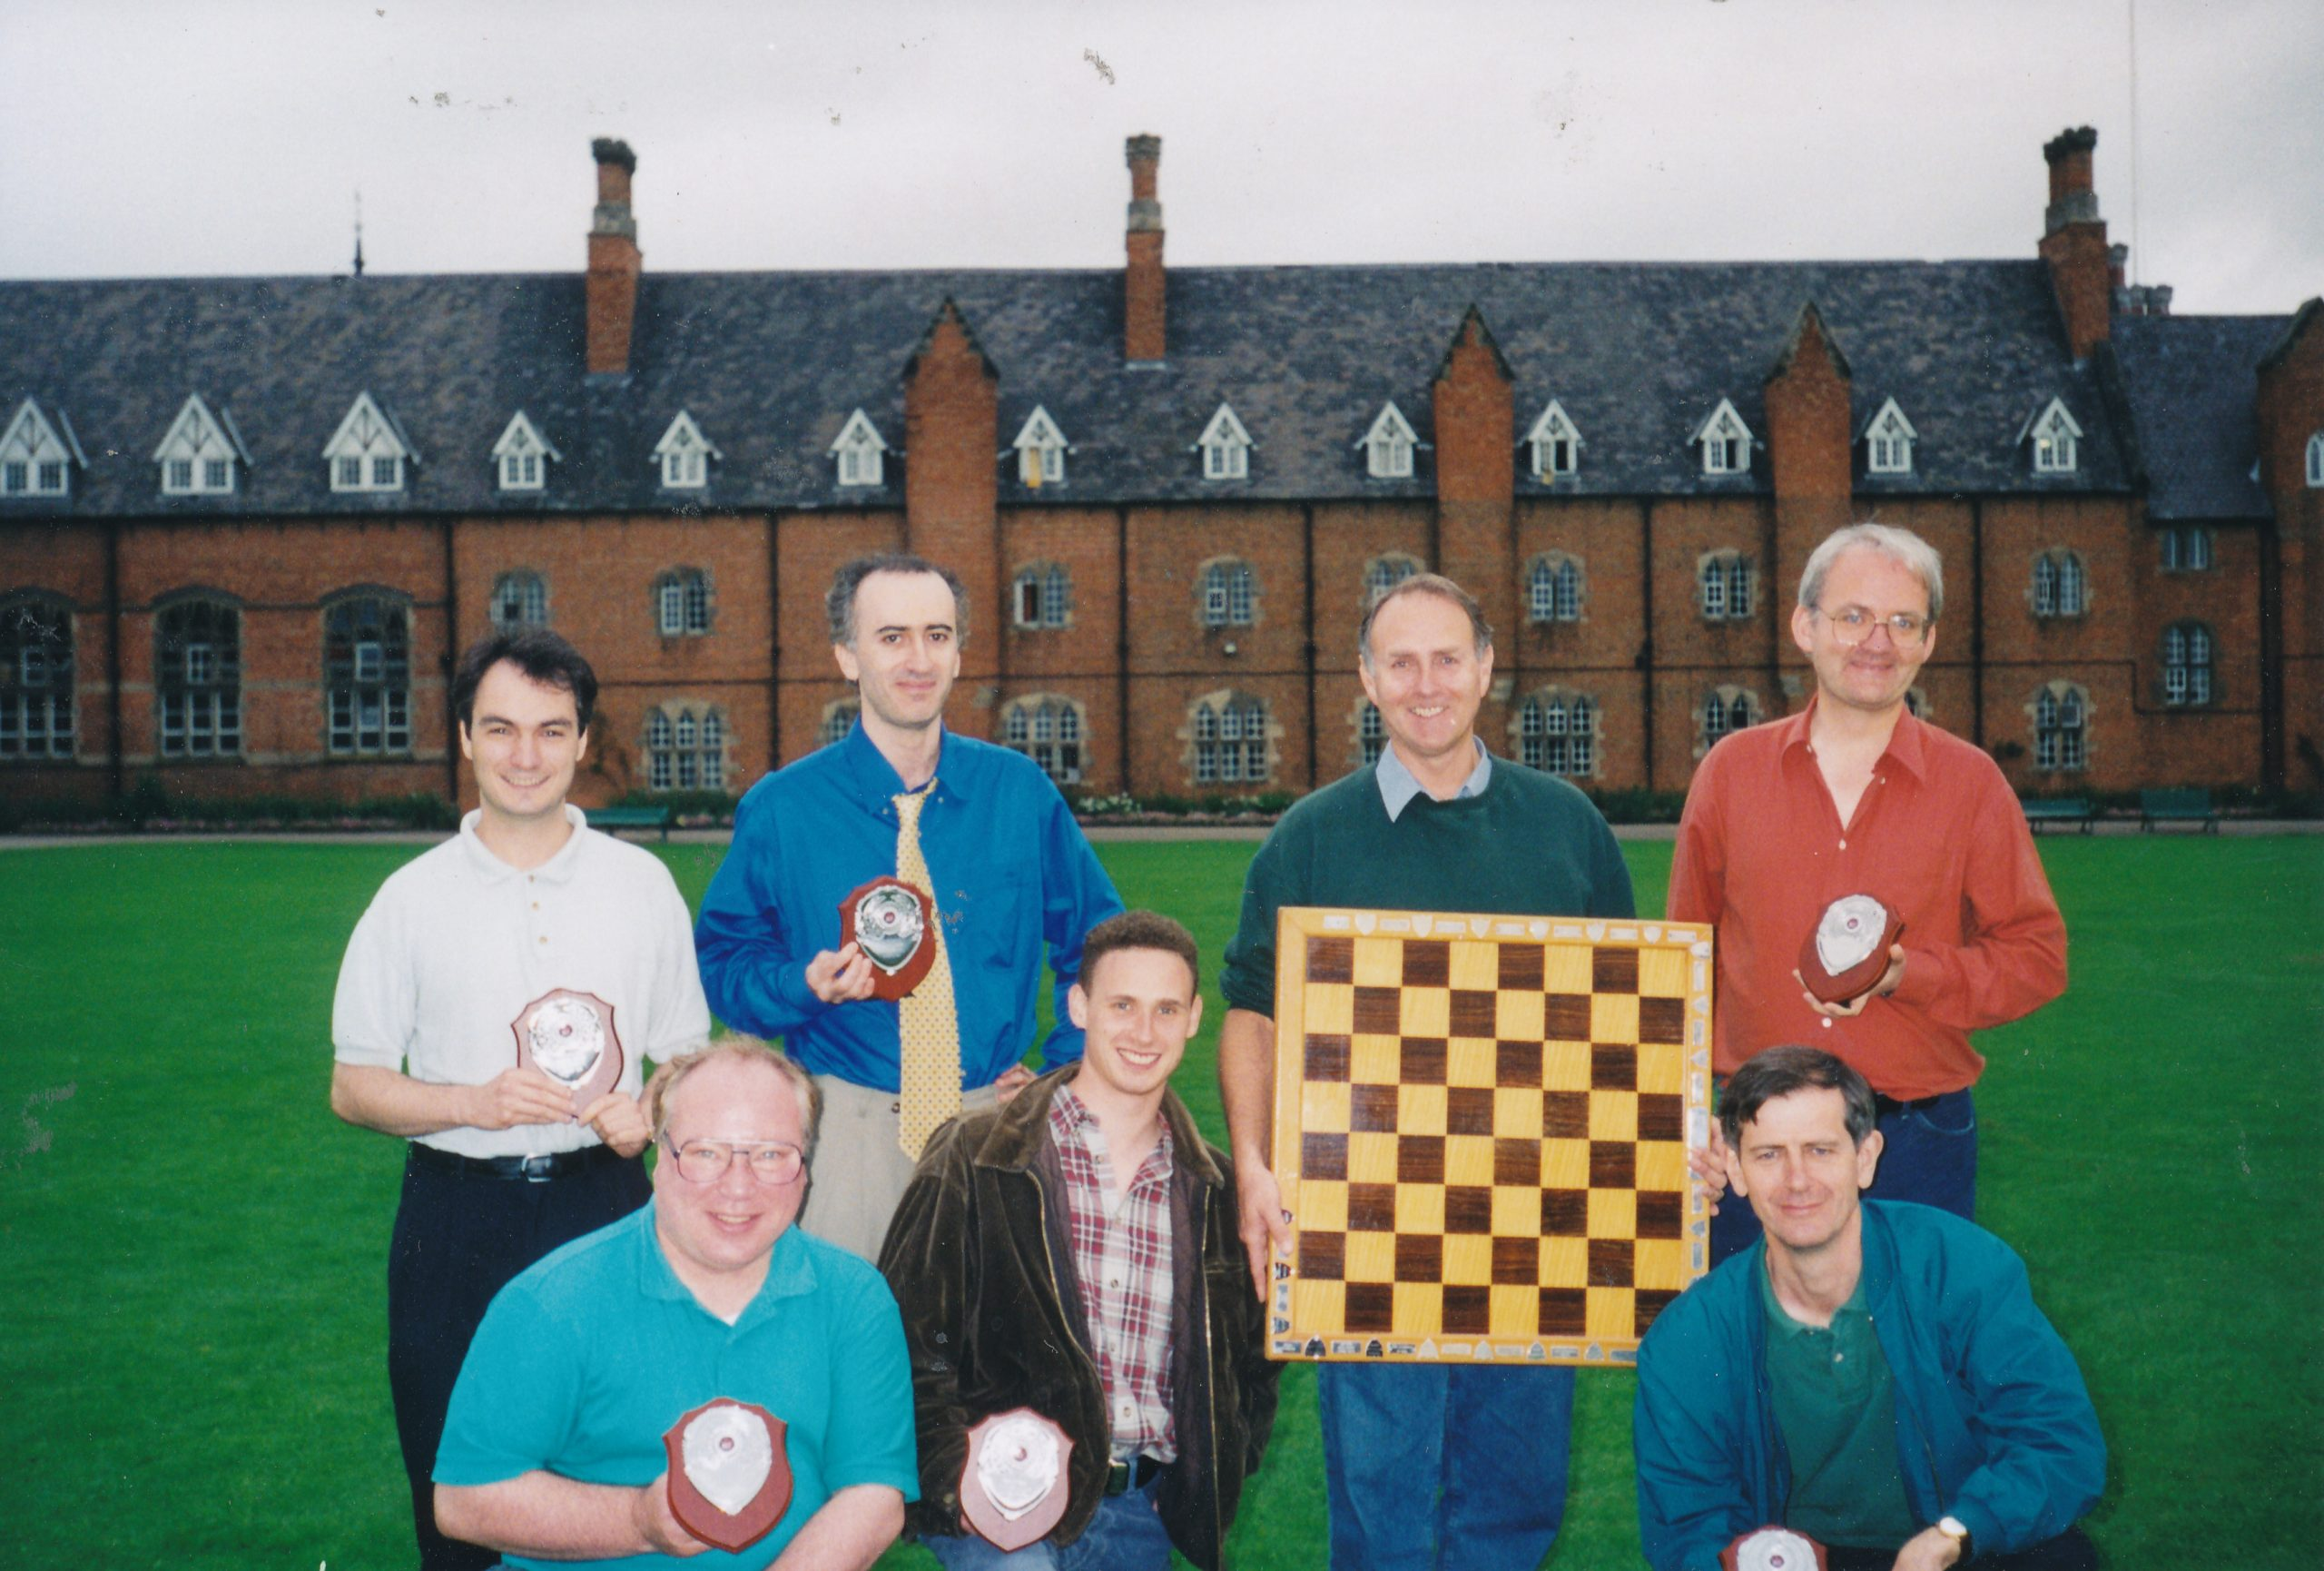 Peter Sowray (top right) with a victorious Wood Green team